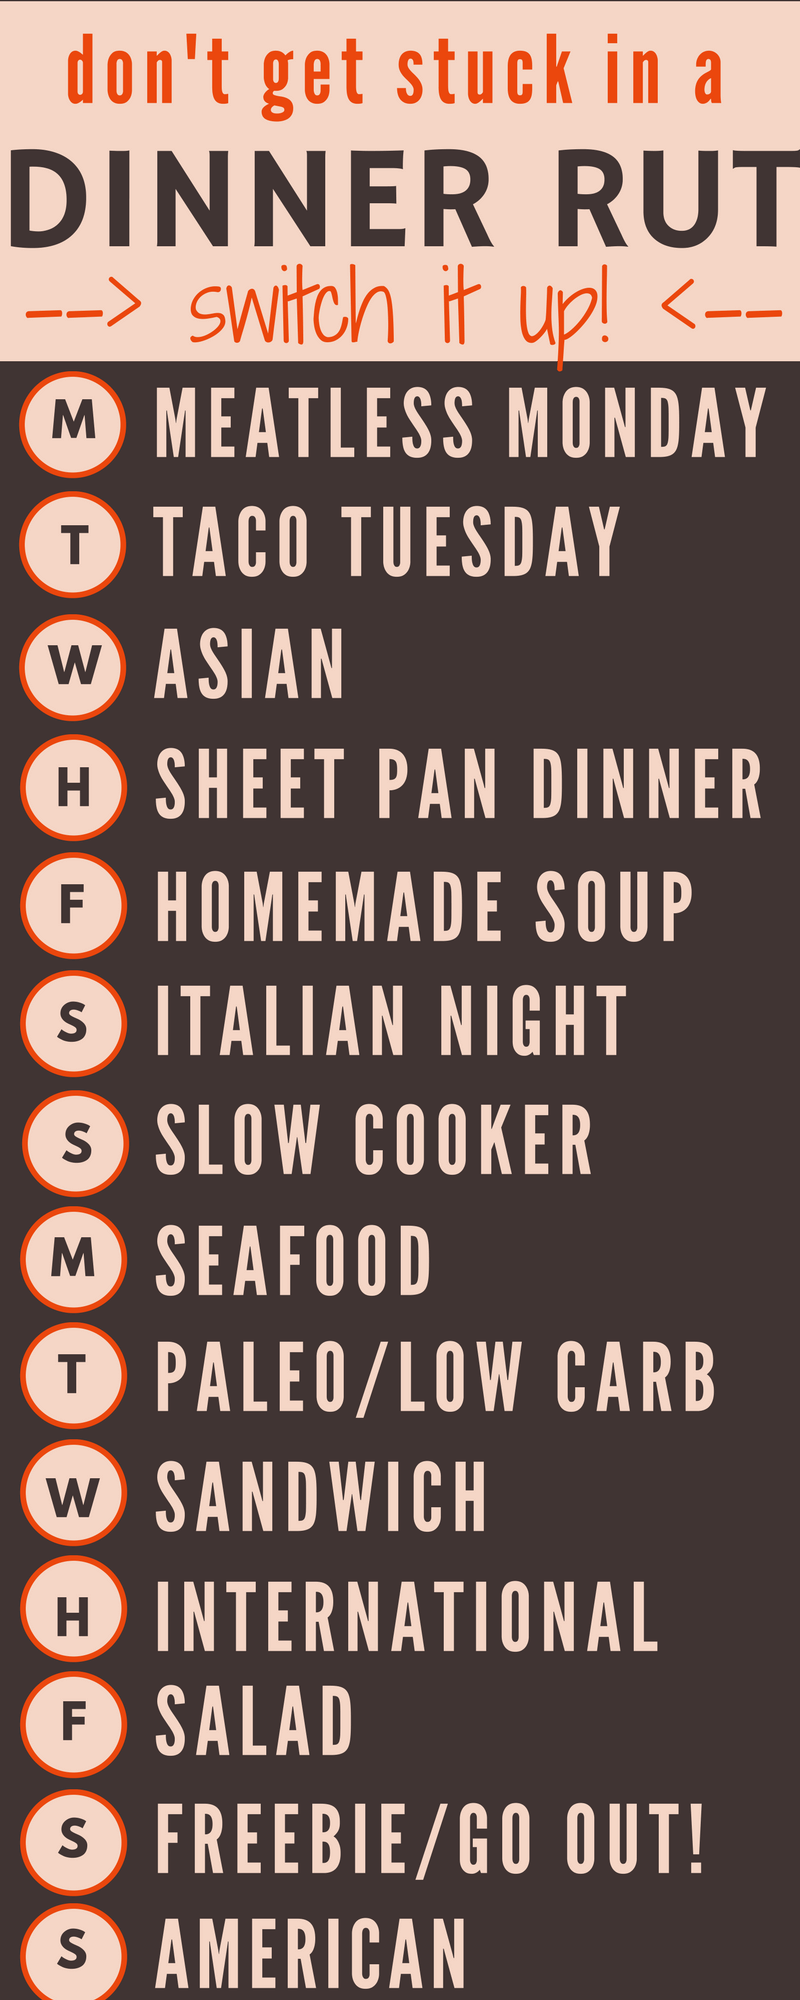 Use This Meal Planning Schedule to Get Out of Your Dinner